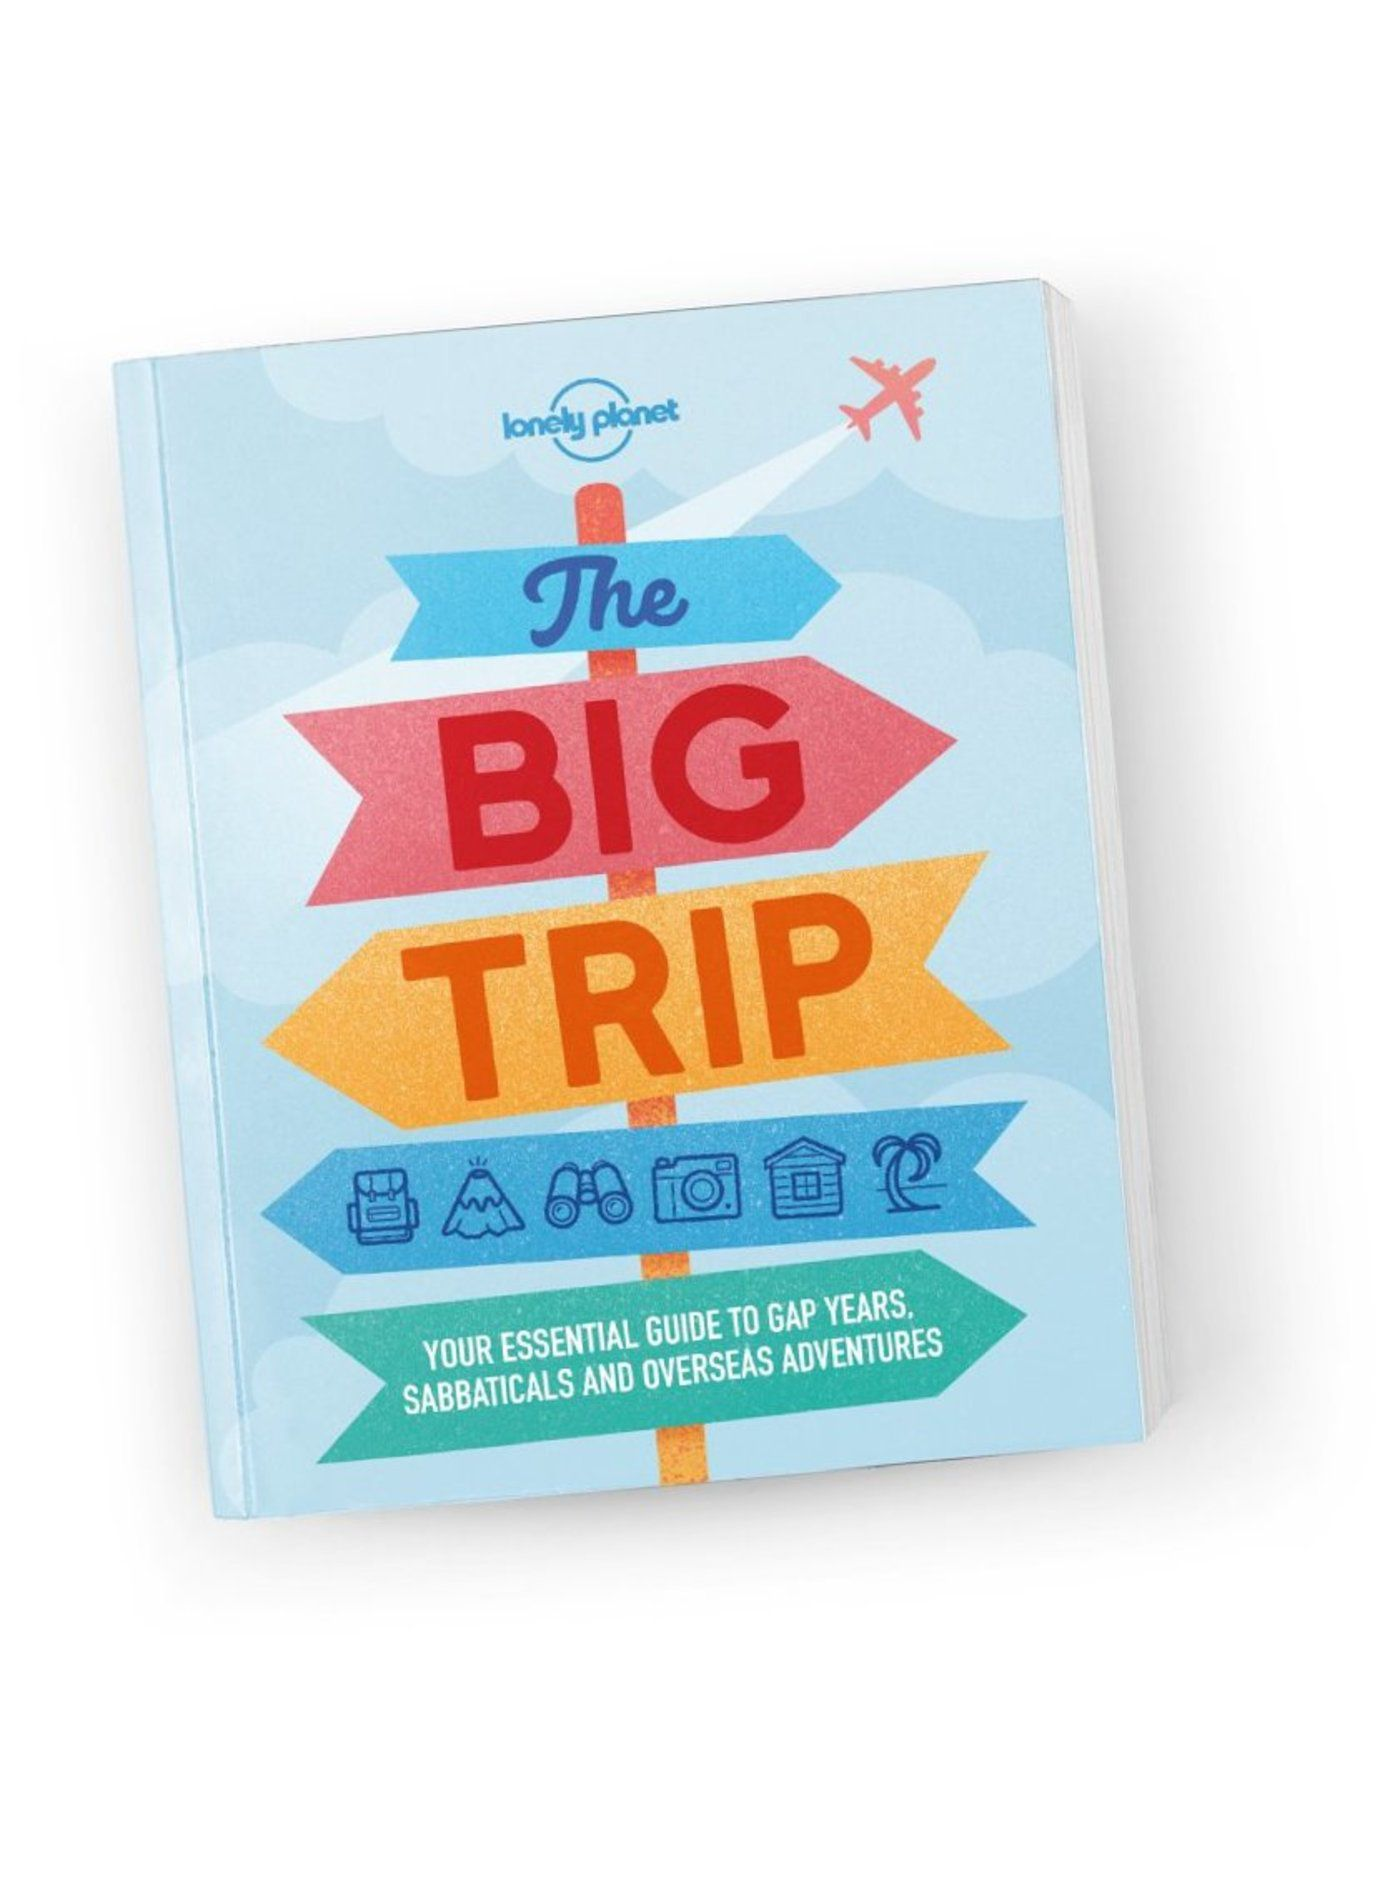 Lonely Planet's The Big Trip book